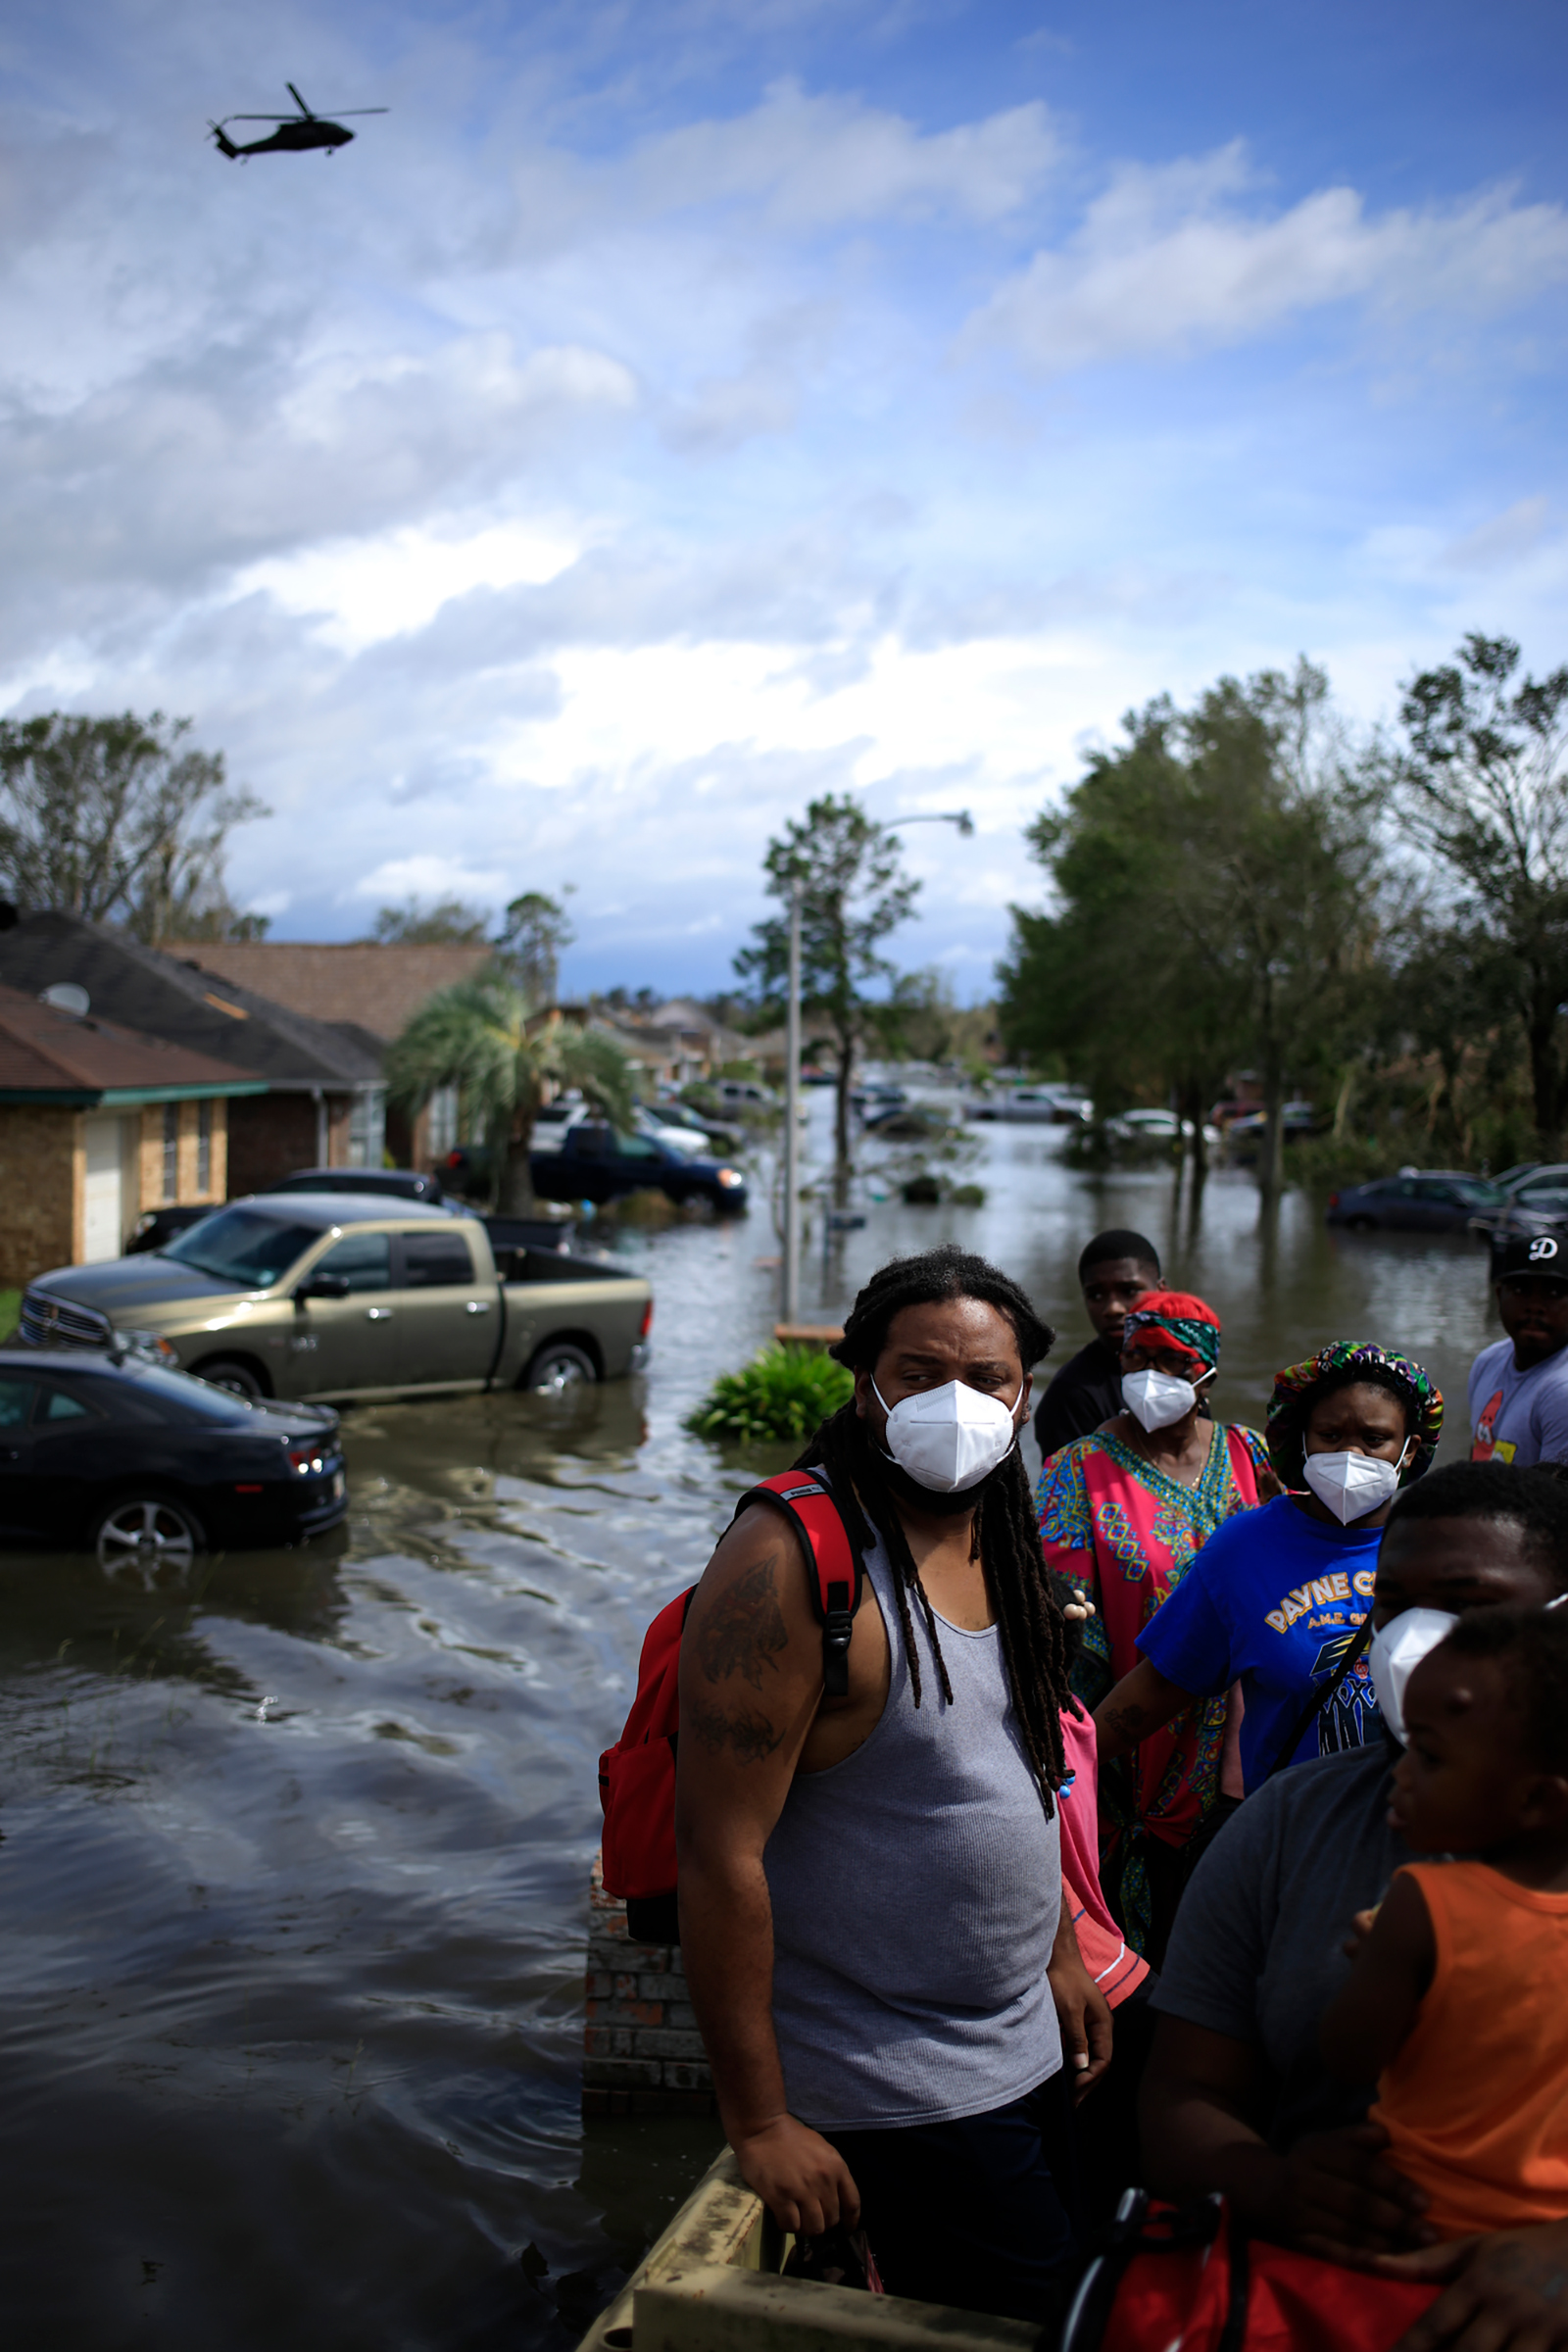 Residents ride in a high water vehicle after being rescued from floodwater left behind by Hurricane Ida in LaPlace, La. on Aug. 30.